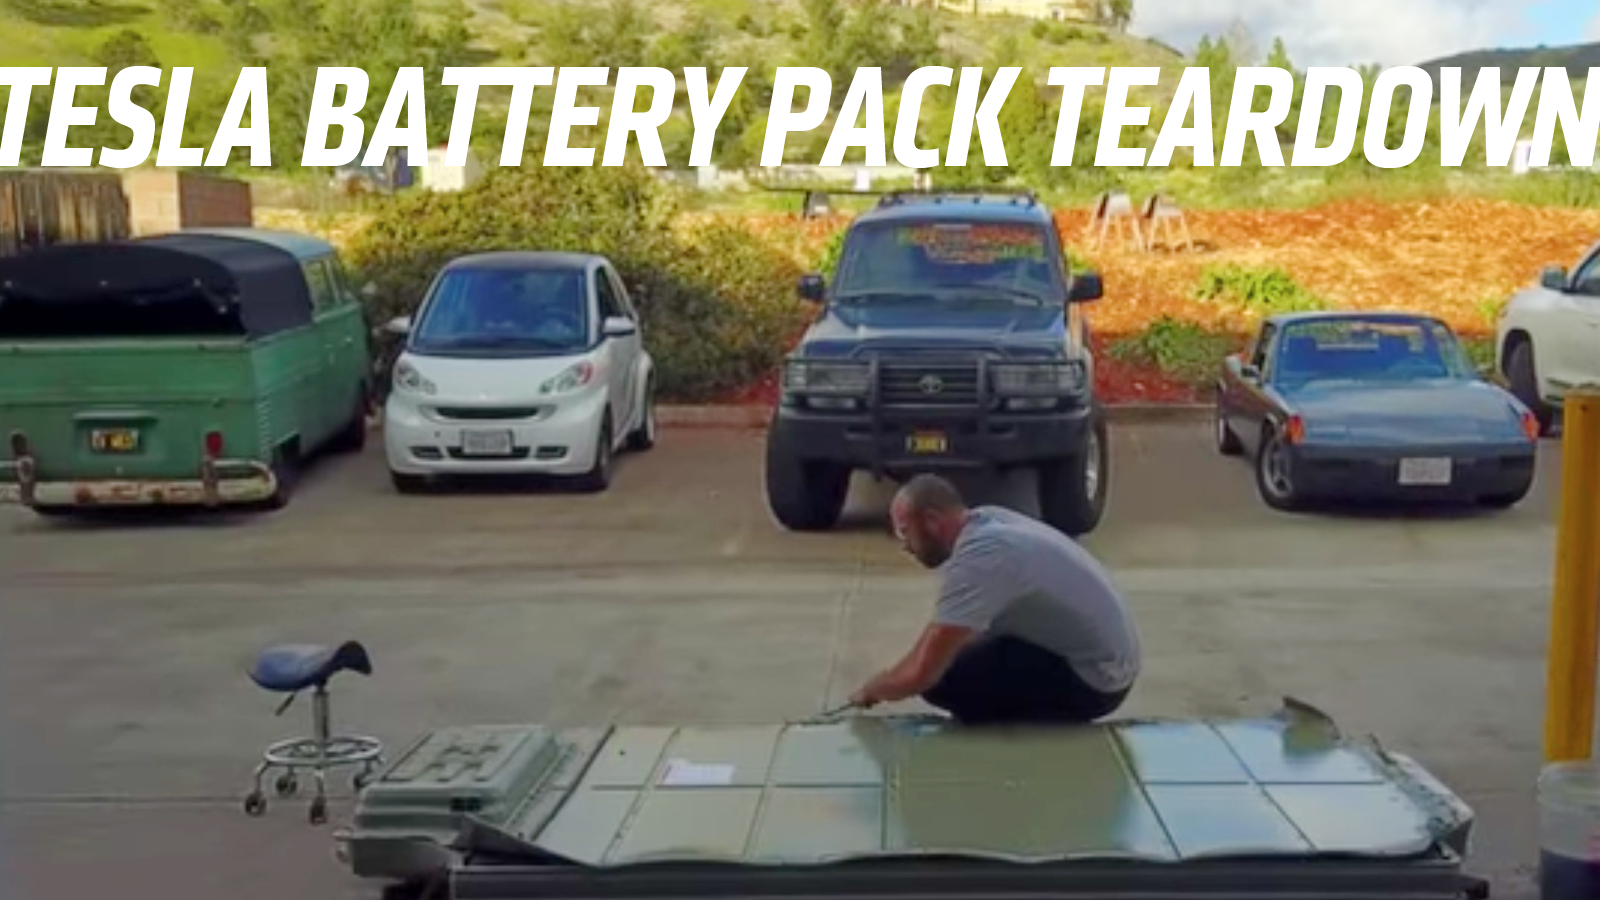 This Teardown Of A Tesla Model S Battery Pack Is Pretty Fascinating